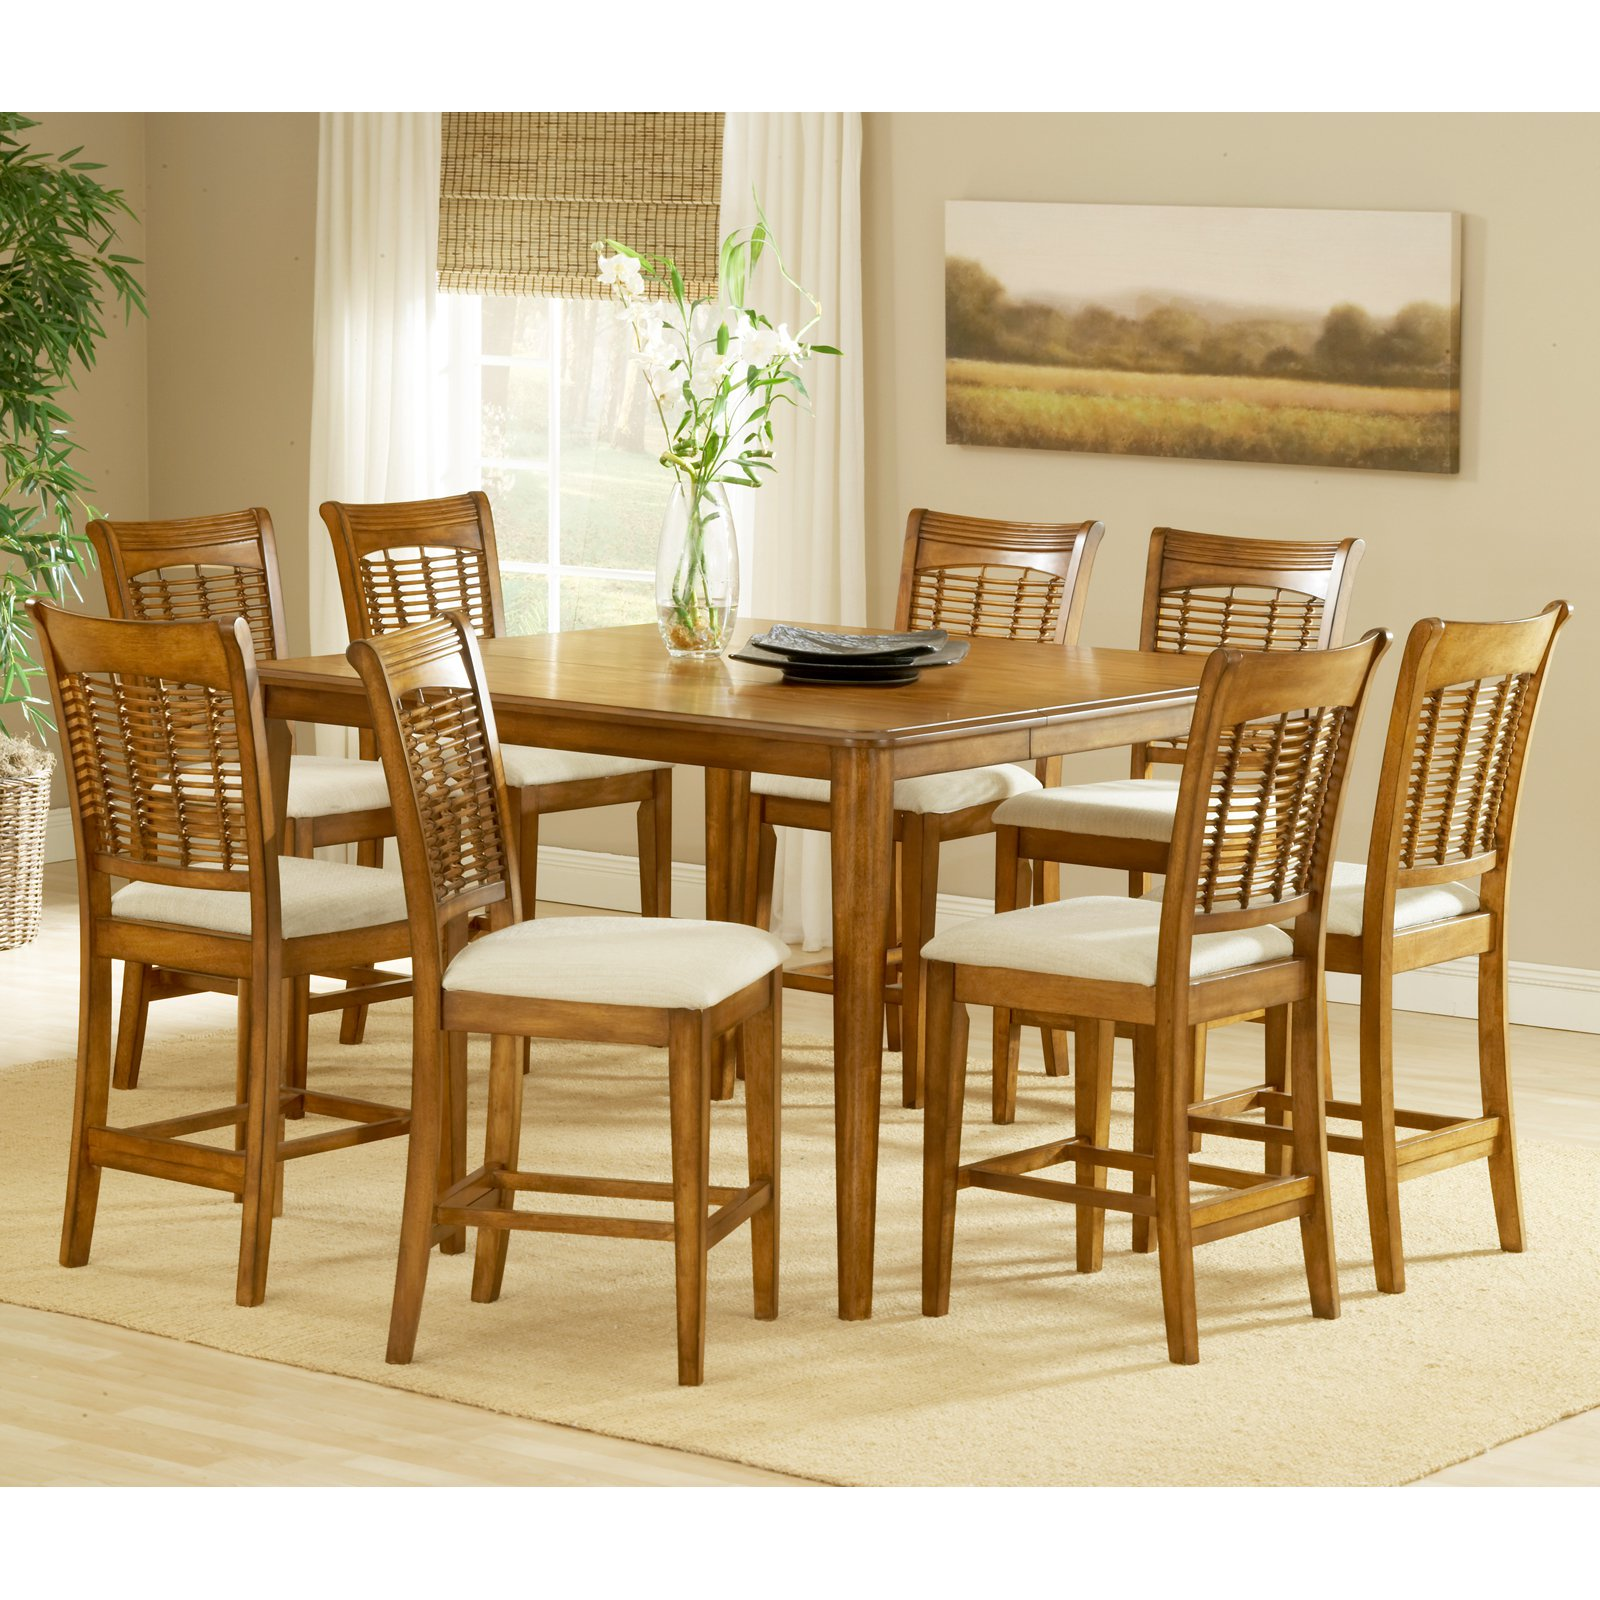 Hilale Bayberry Glenmary 9 Piece Rectangle Counter Height Dining Set With Leaf Oak